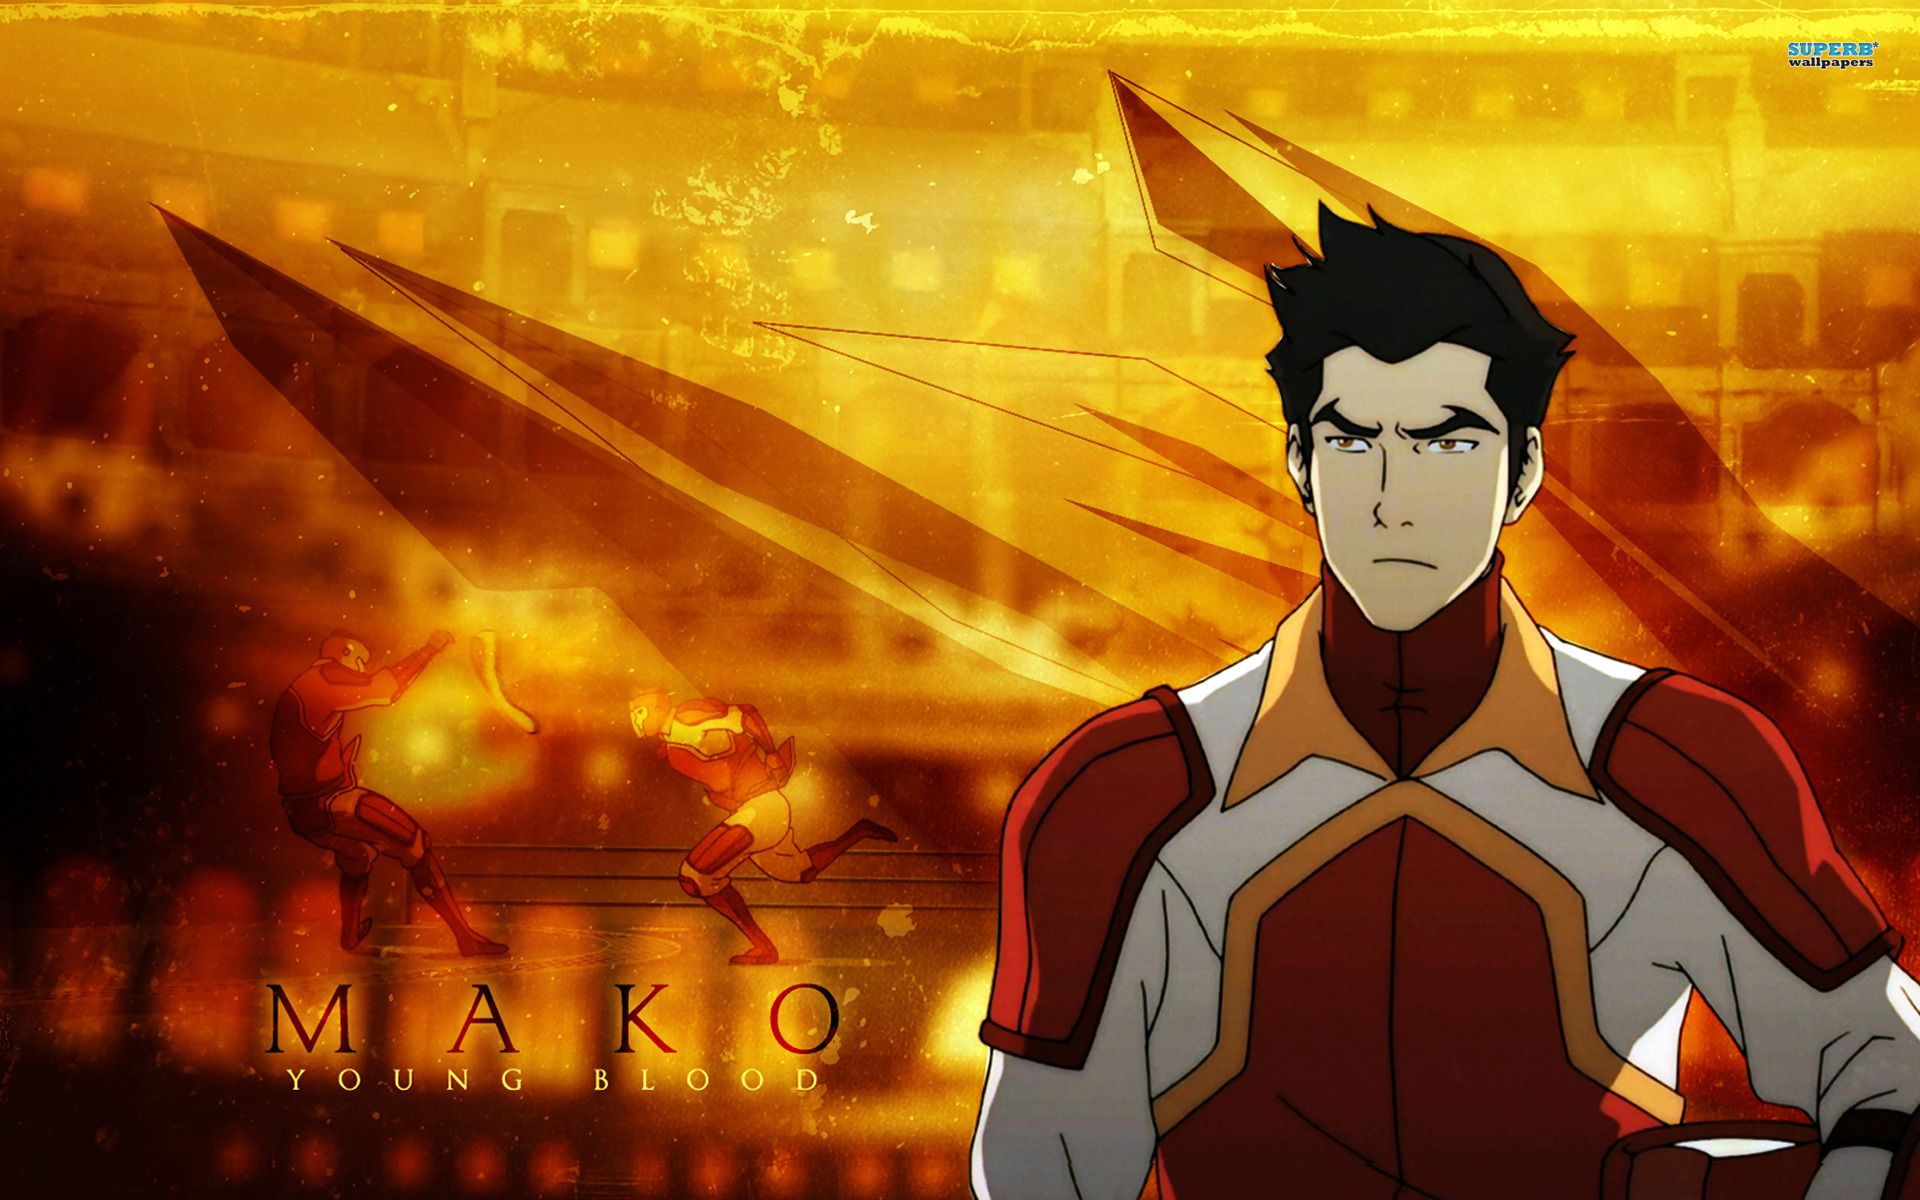 Mako Avatar The Legend Of Korra Wallpaper Anime Wallpapers Legend Of Korra Mako Legend Of Korra Korra